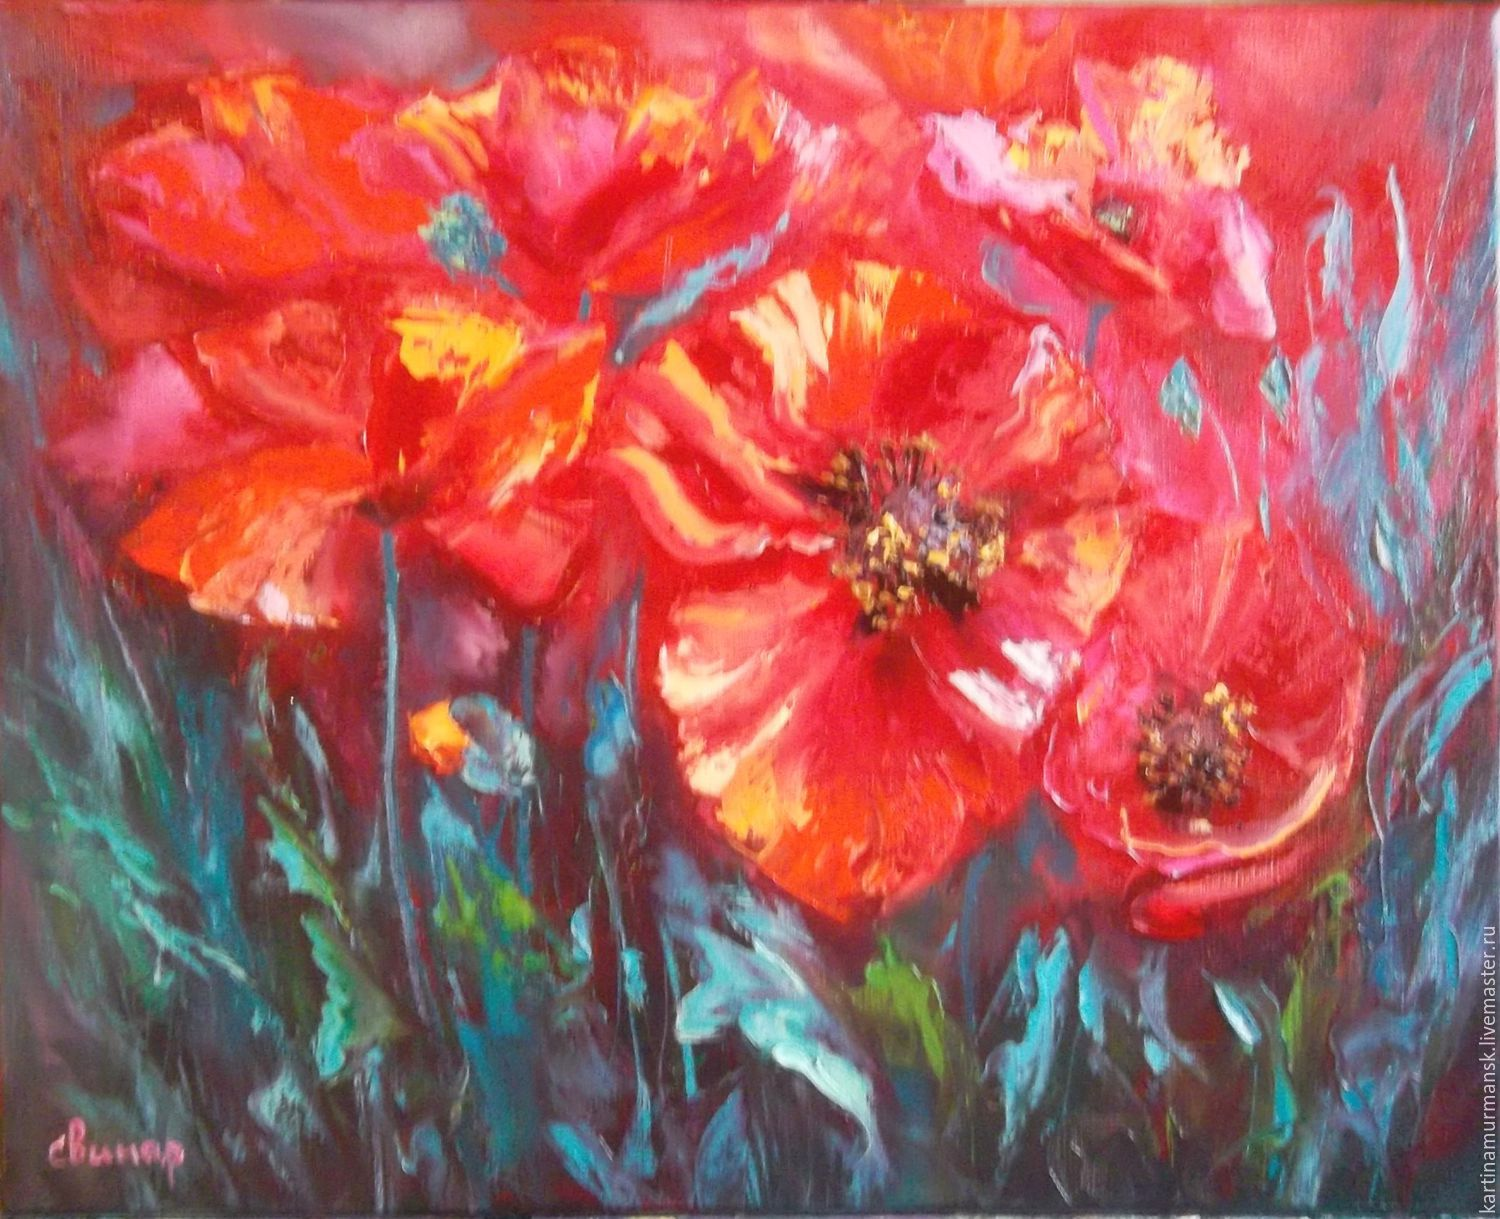 Oil painting with poppies 40/50 'Invite for a walk', Pictures, Murmansk,  Фото №1